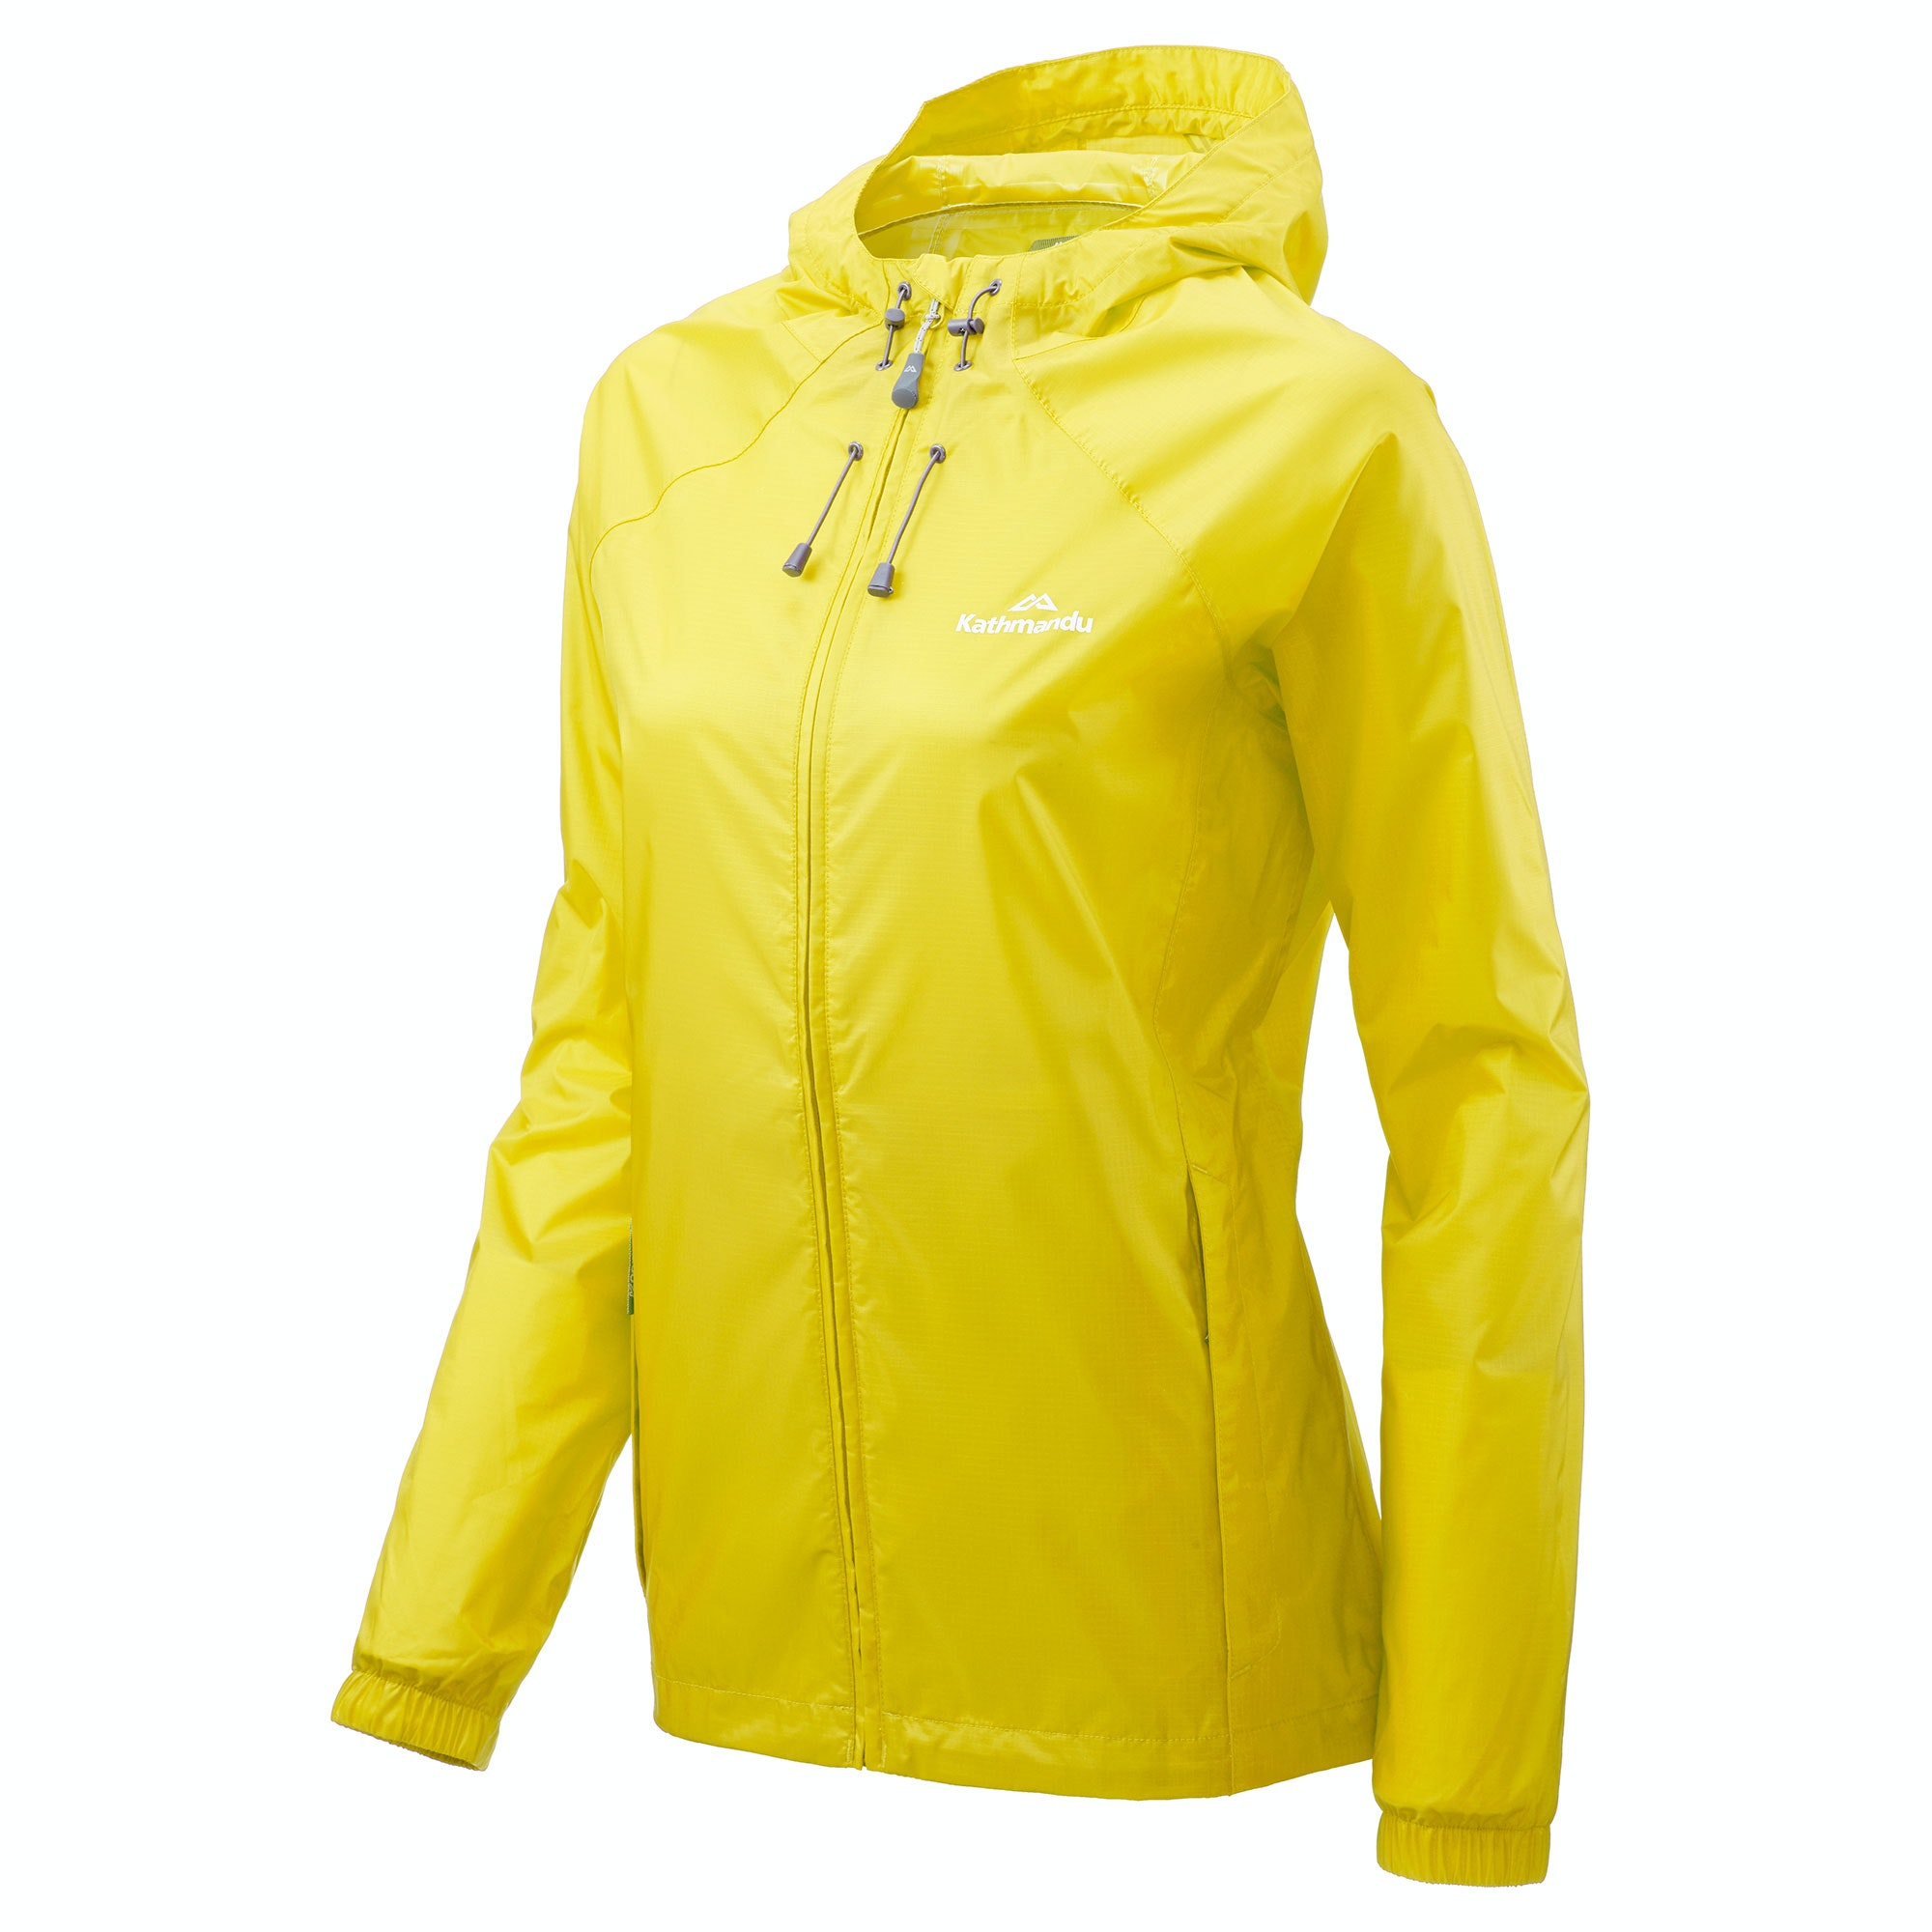 yellow jacket women Find great deals on ebay for yellow jacket women shop with confidence.